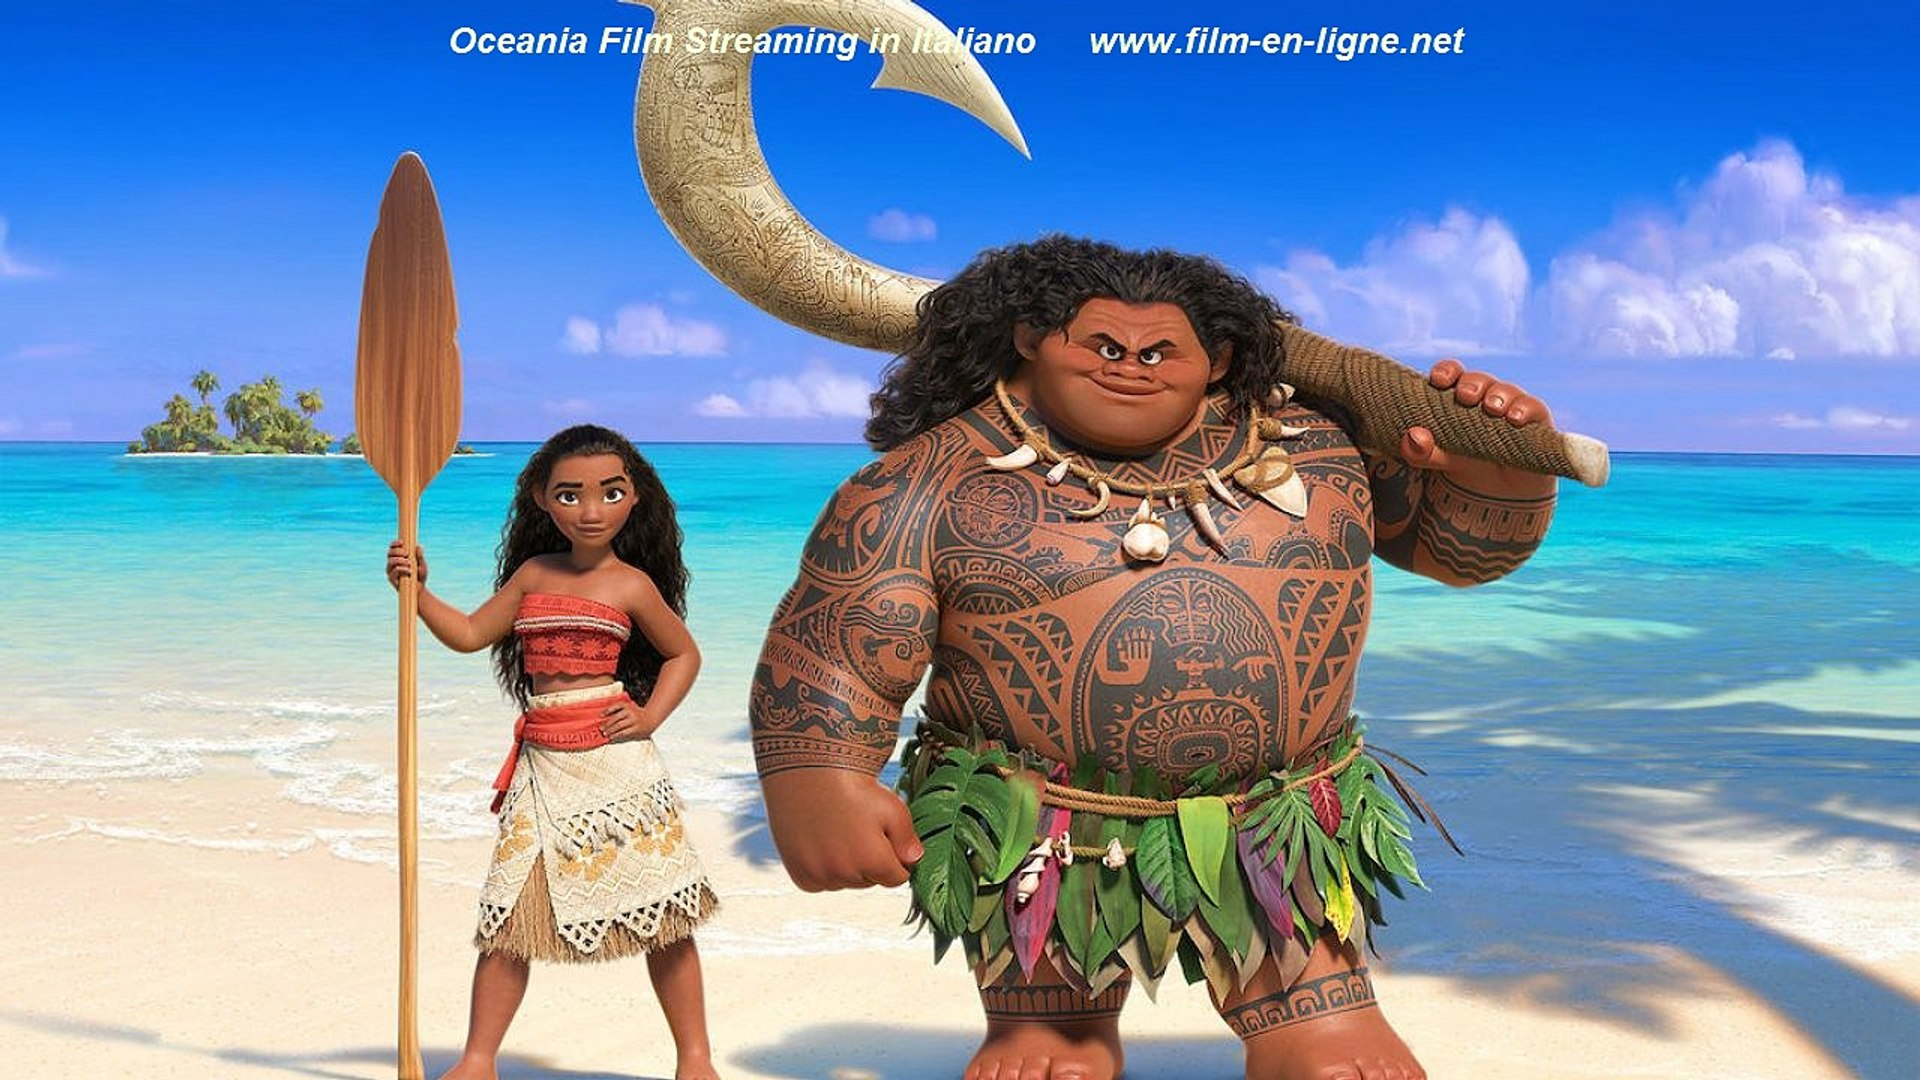 Oceania Film Completo Vedere Online Video Dailymotion